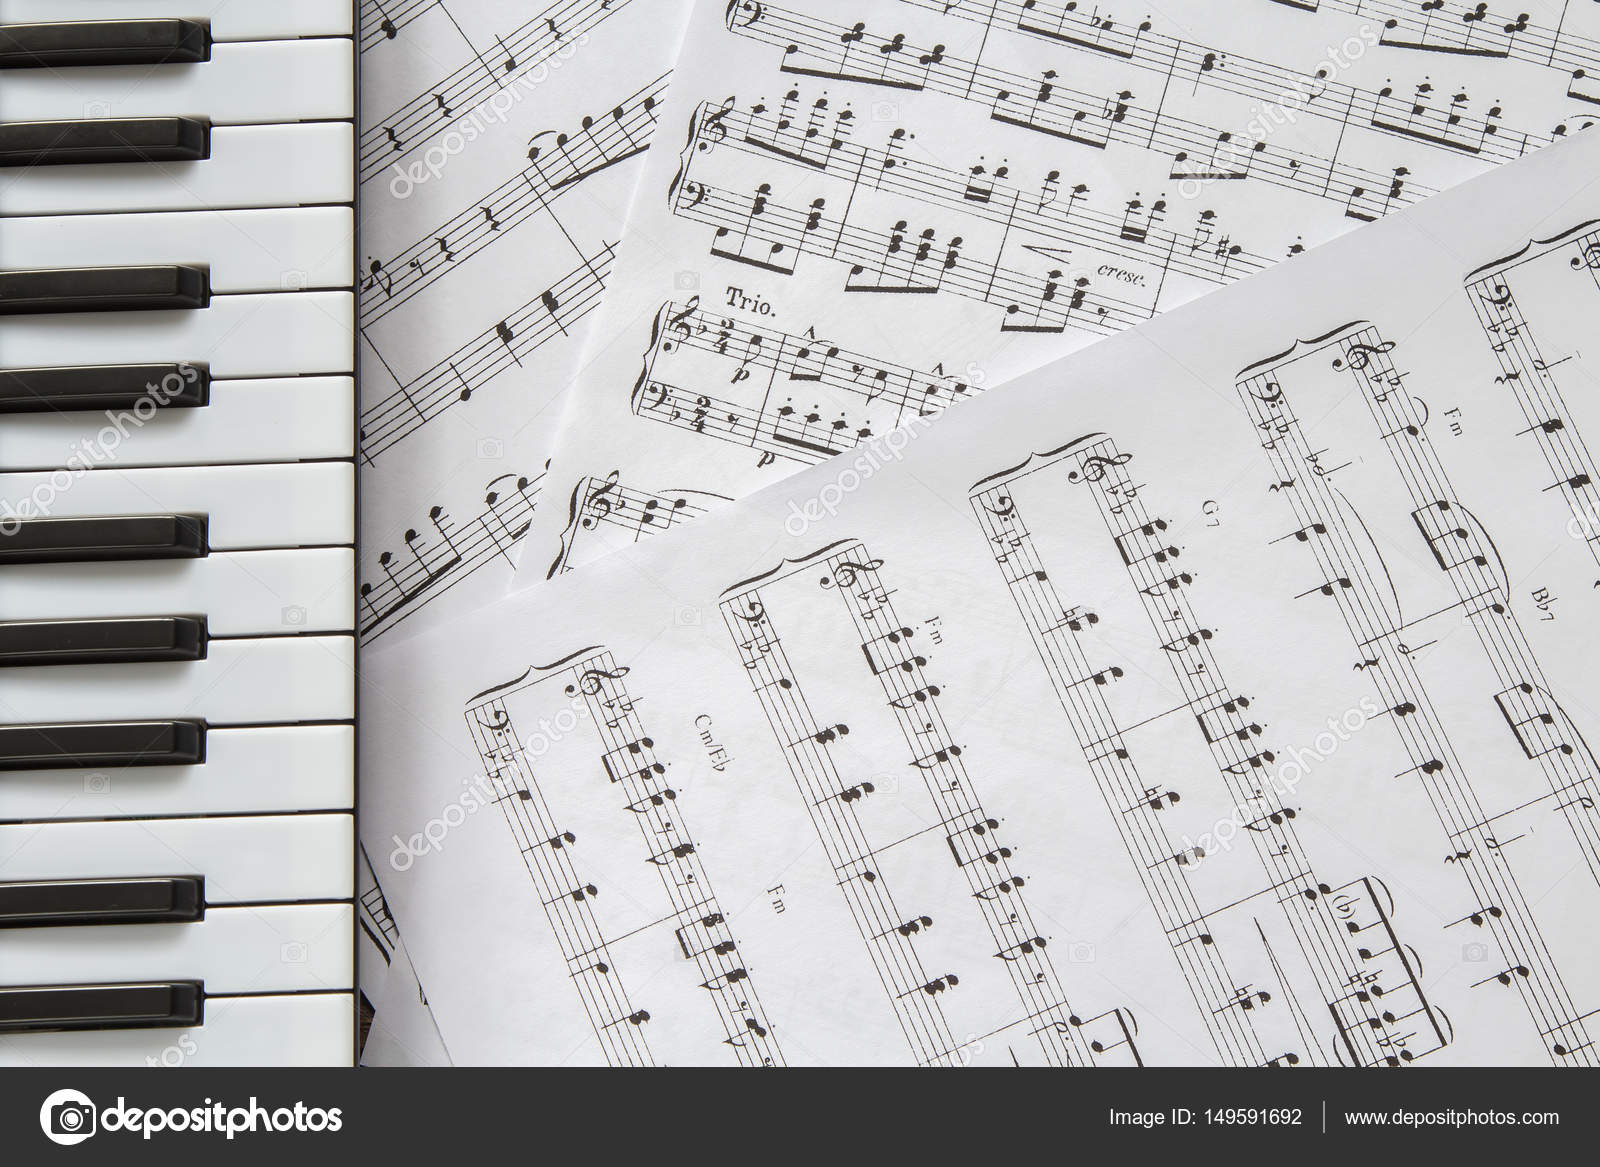 Piano keyboard on music notes background stock photo cyndykids piano keyboard on music notes background stock photo malvernweather Image collections